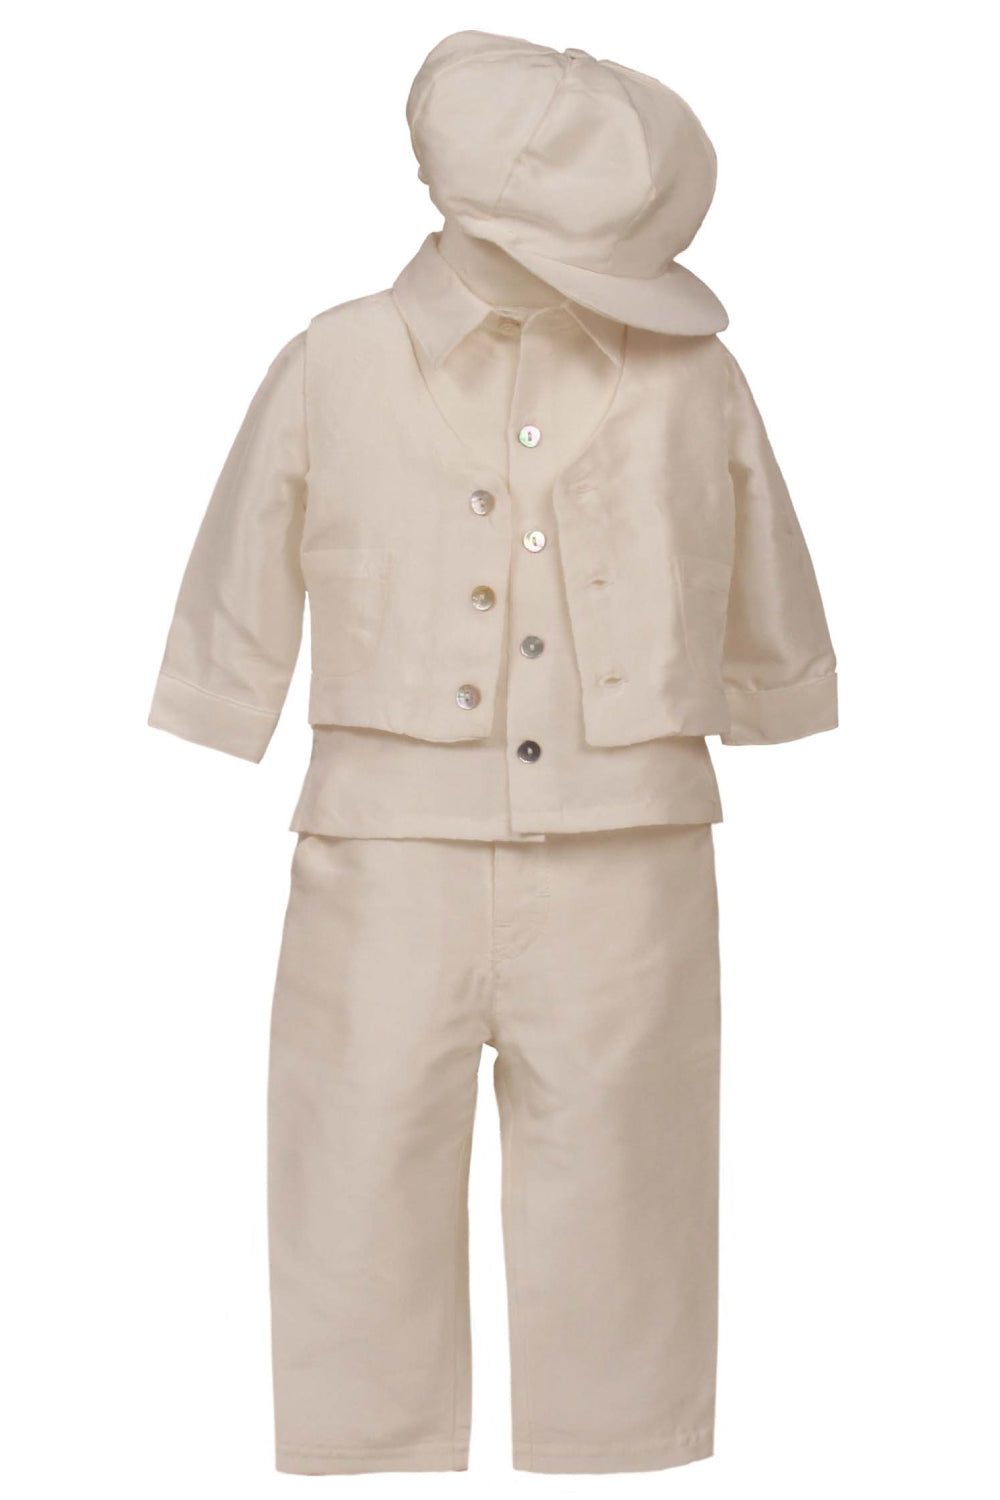 Joseph - Boys 4 Piece Silk Outfit